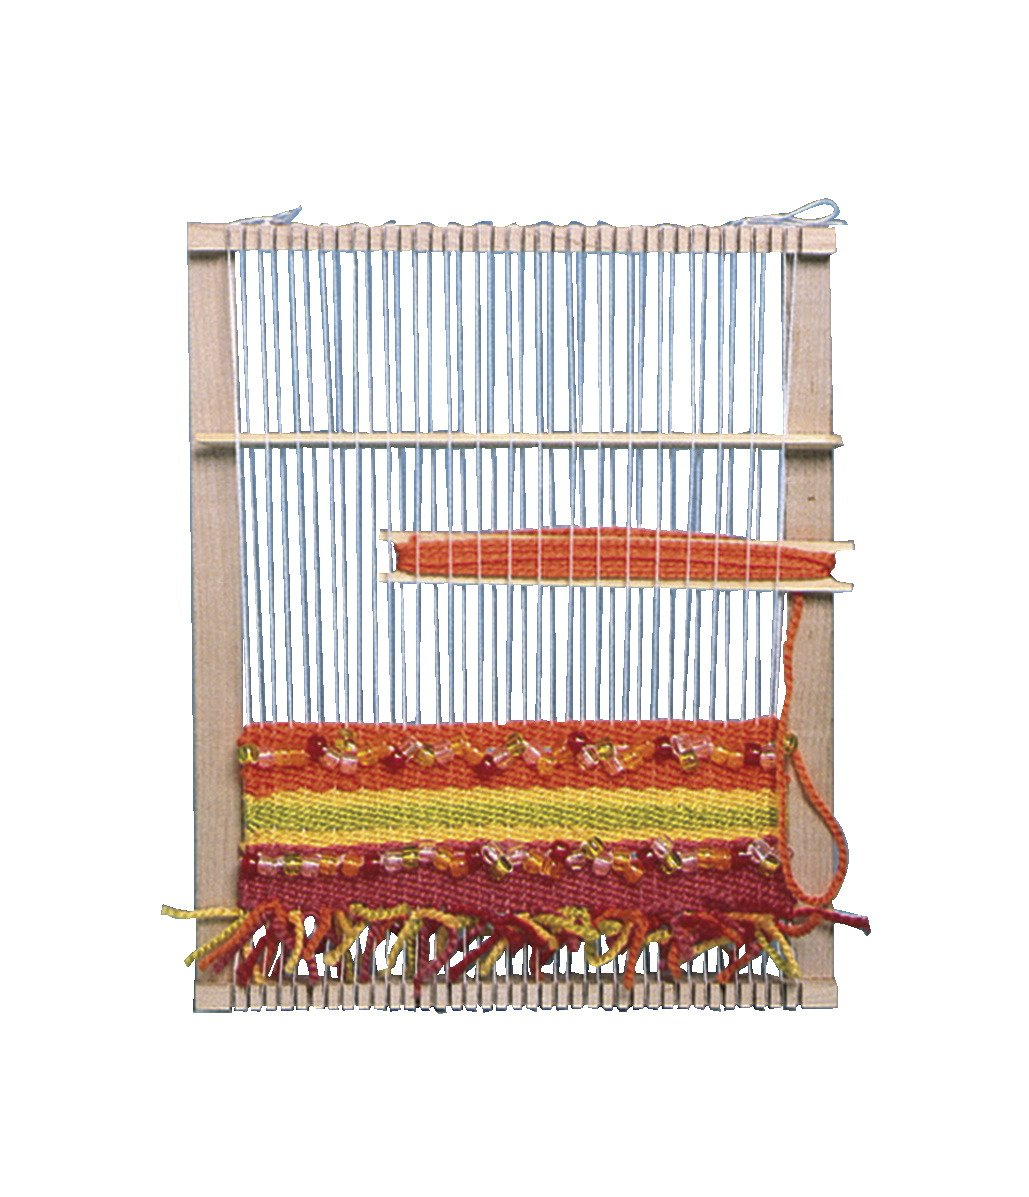 Jack Richeson Flat Peacock Finger Loom, 10 x 12 Inches